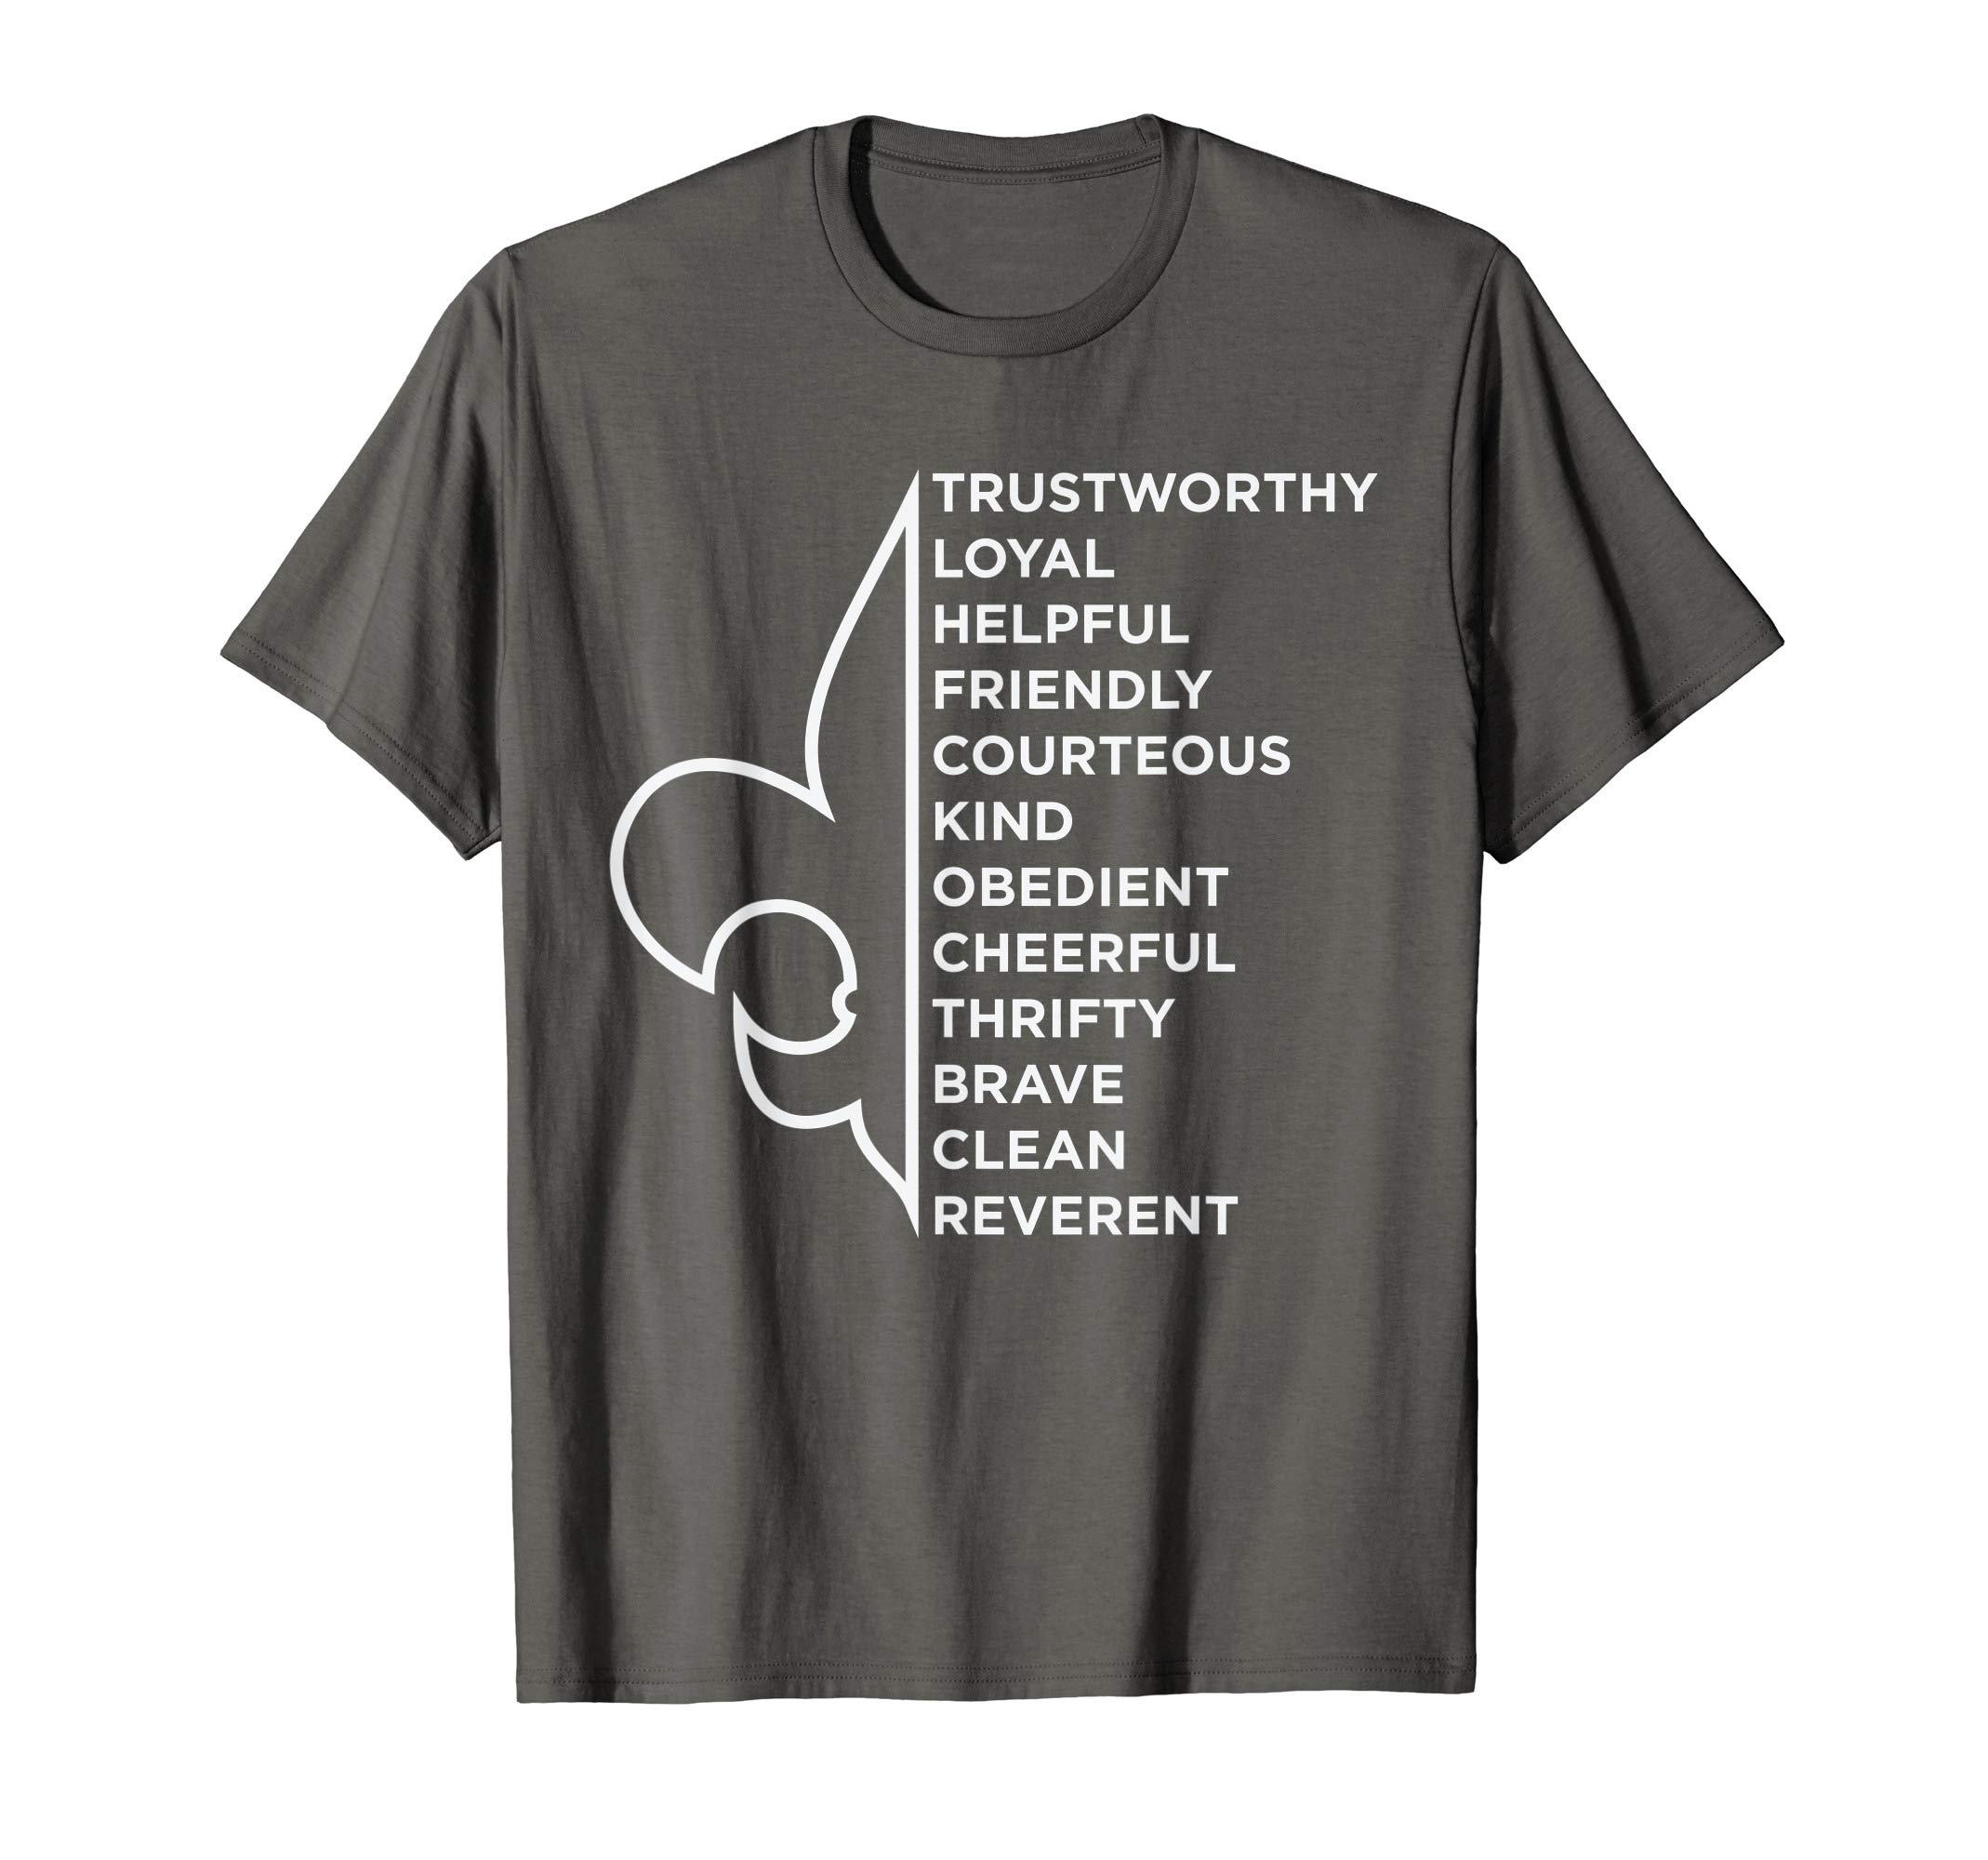 Scout Law | Scouting T-Shirt by 107 Scouting